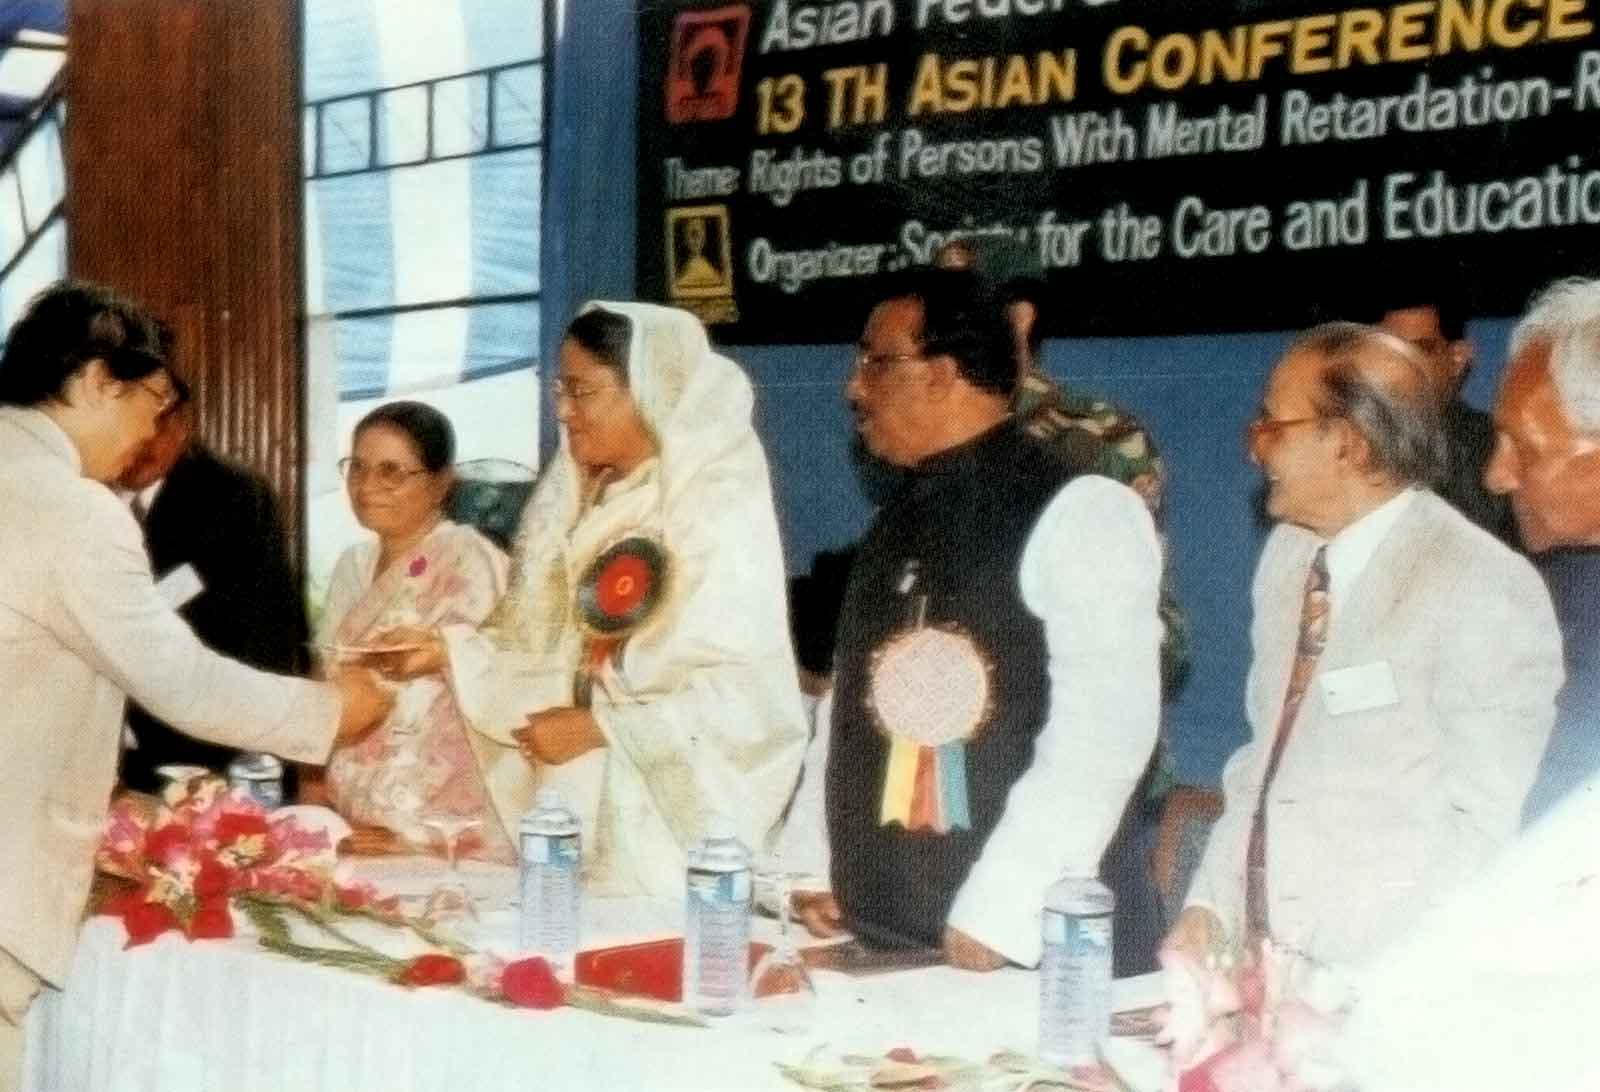 Prime Minister Sheikh Hasina distributing certificate to Foreign delegates